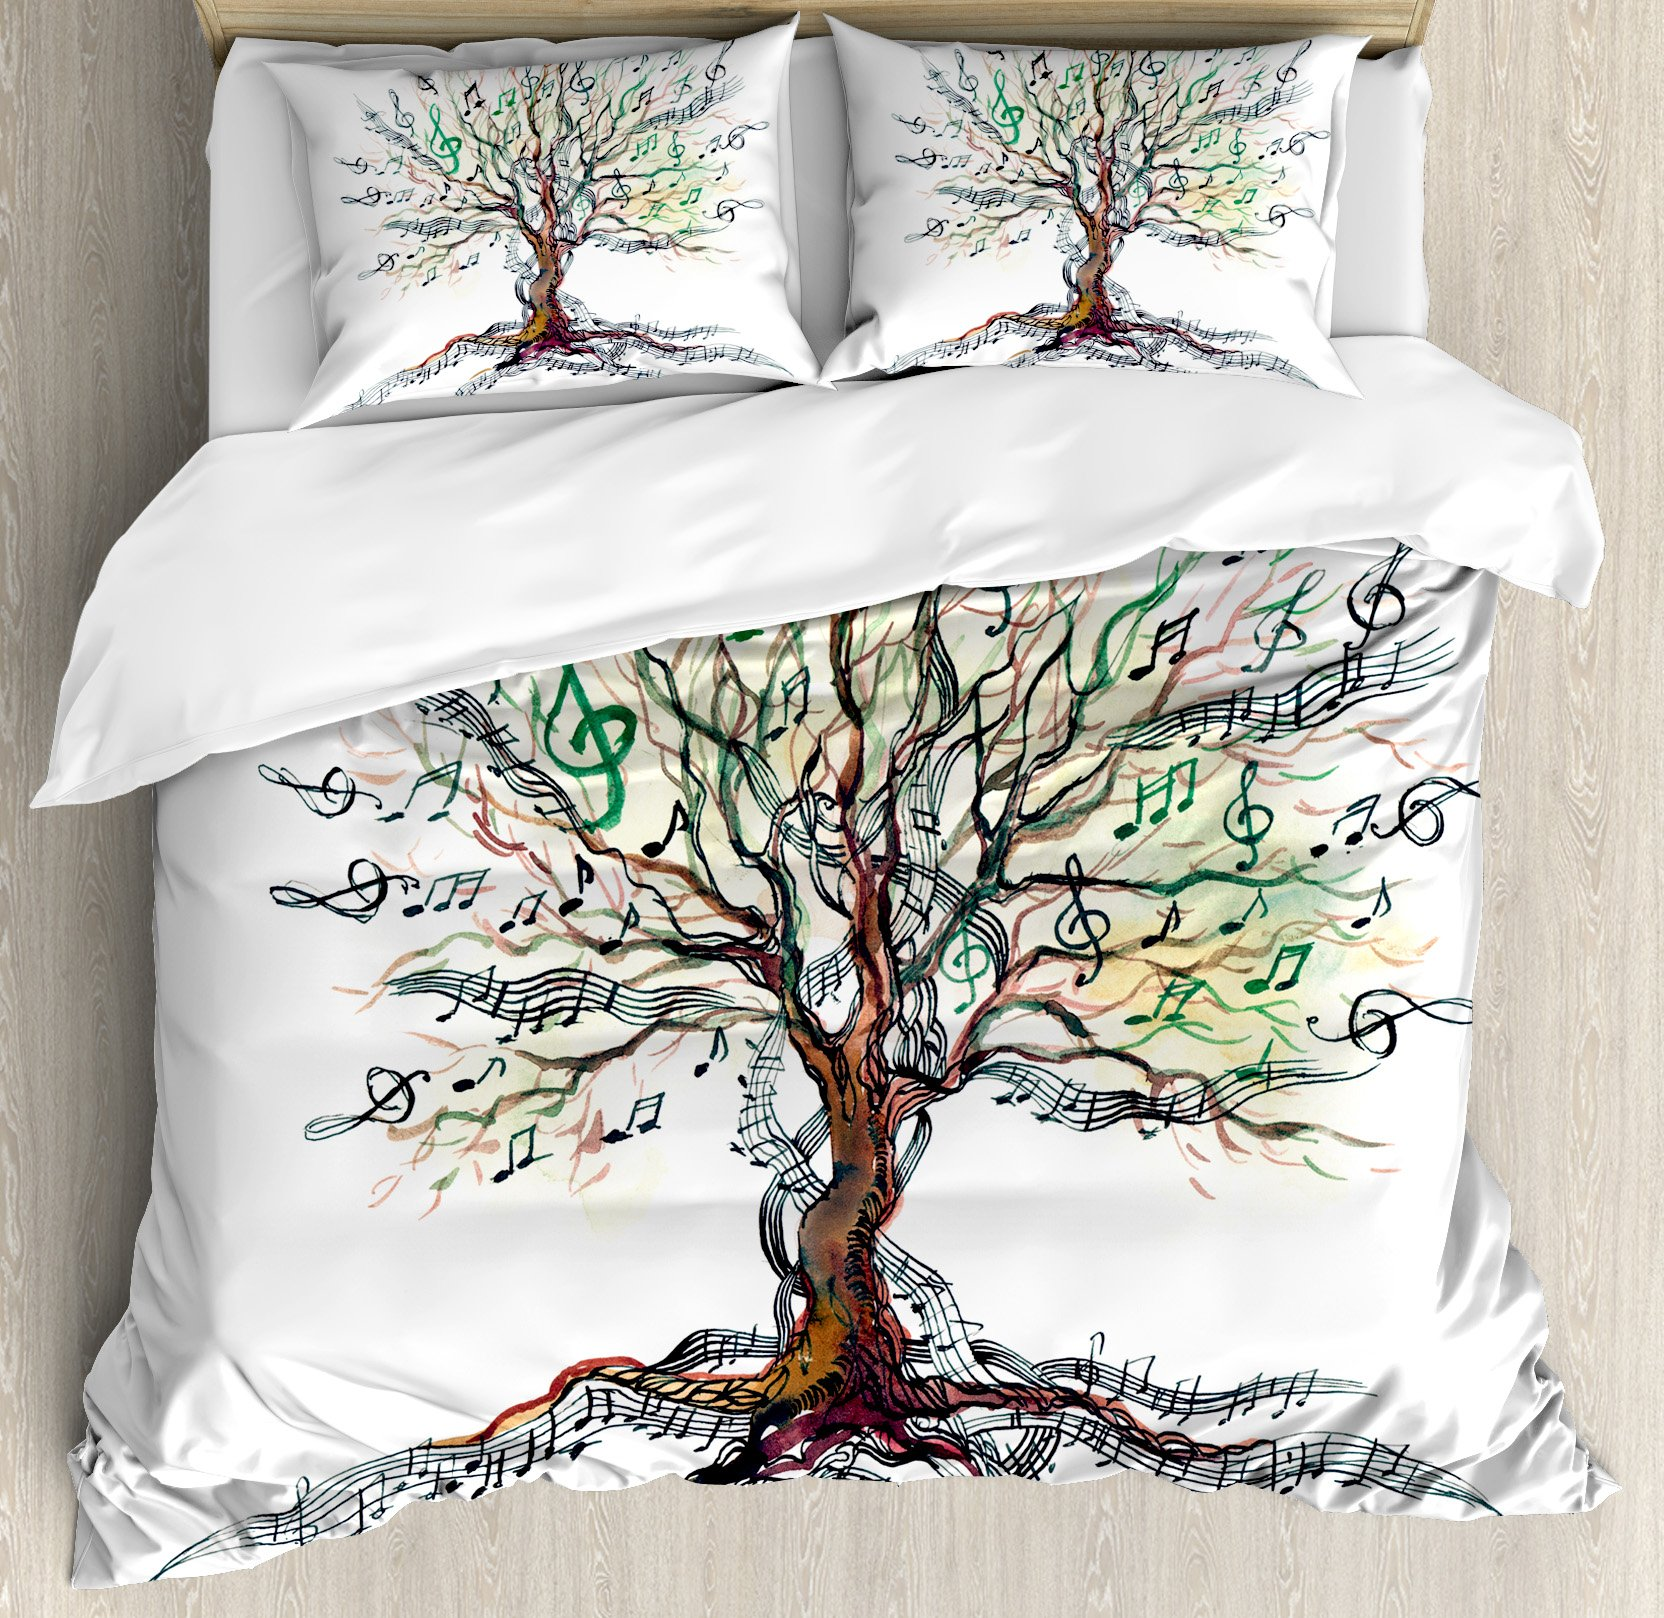 Music Decor Duvet Cover Set Queen Size by Ambesonne, Musical Tree Autumn Clef Trunk Swirl Nature Illustration Leaves Creative Design, Decorative 3 Piece Bedding Set with 2 Pillow Shams